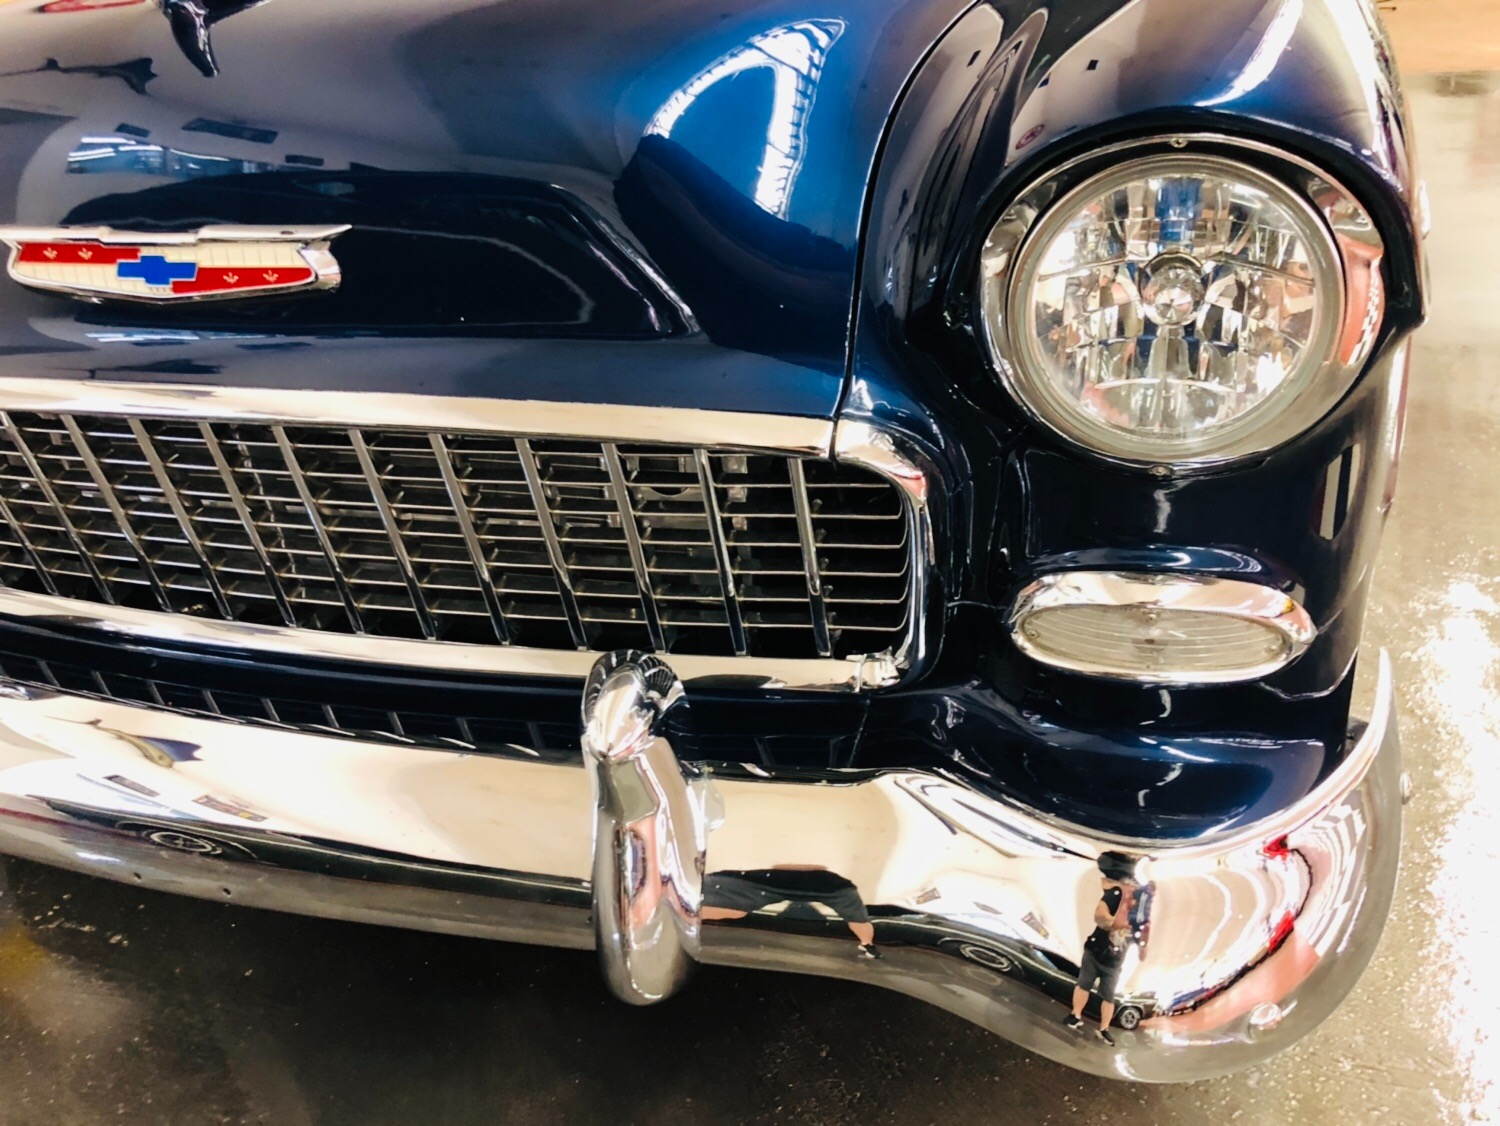 Used 1955 Chevrolet Bel Air/150/210 -AMERICAN CLASSIC PRO TOURING RESTORED AC CUSTOM HOTROD VINTAGE-SEE VIDEO | Mundelein, IL